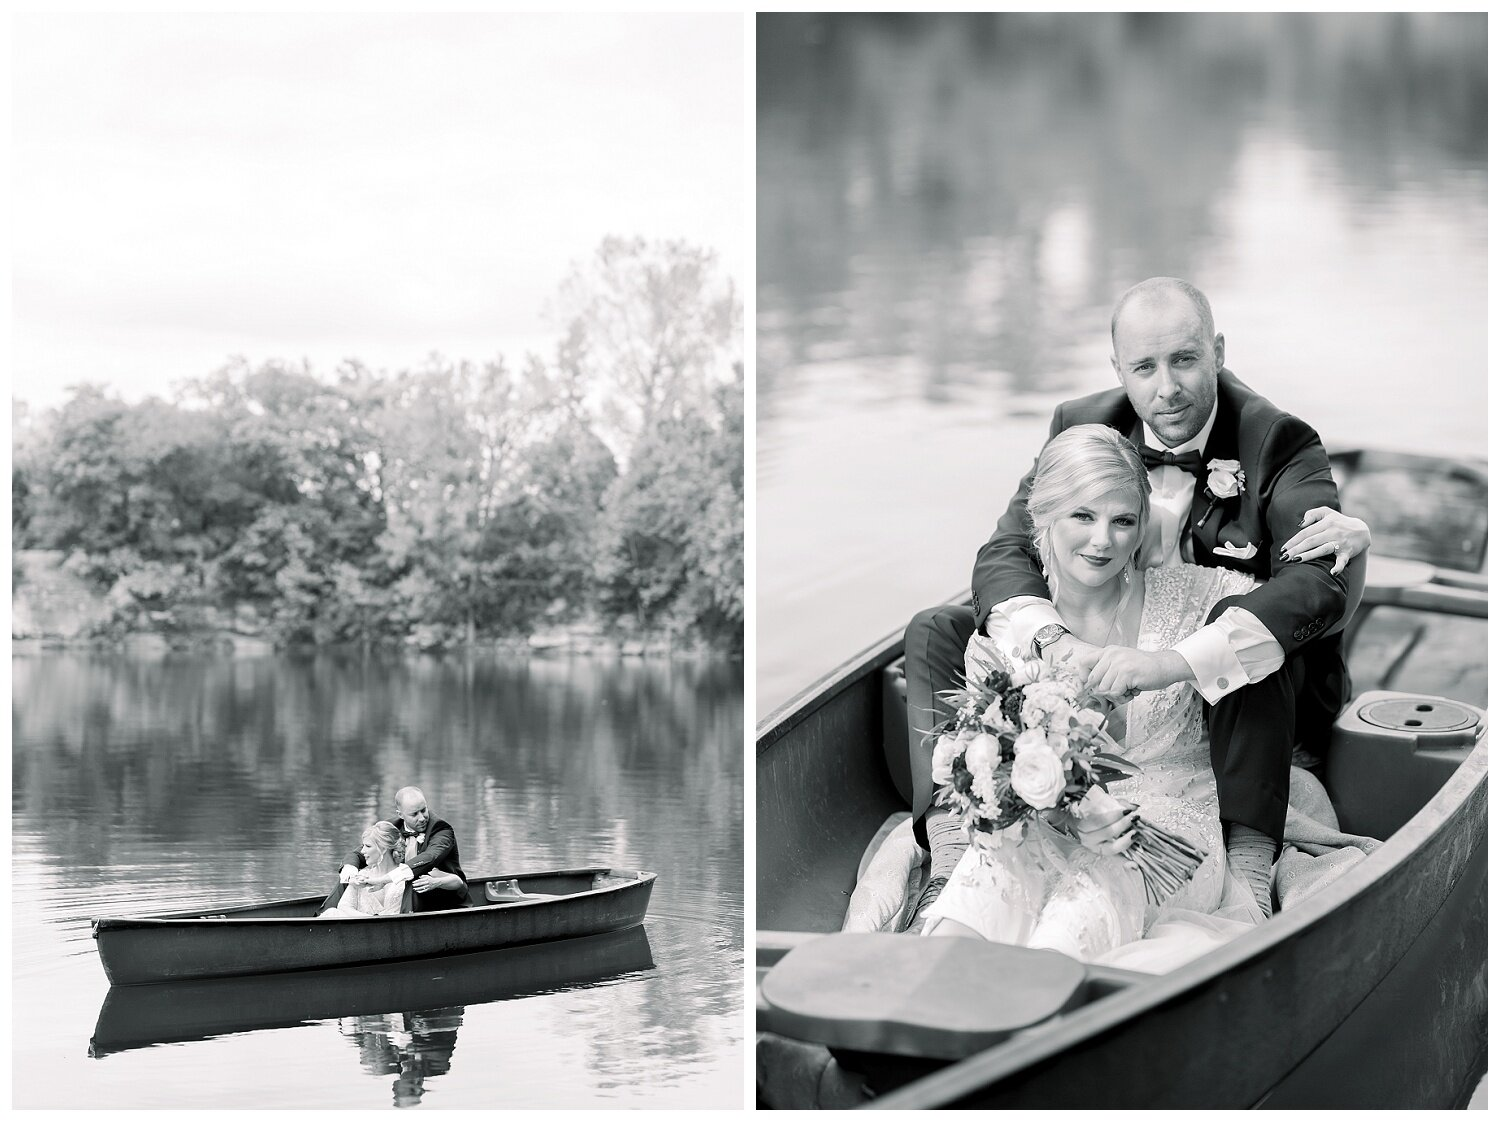 preferred wedding photographer for wildcliff weddings and events